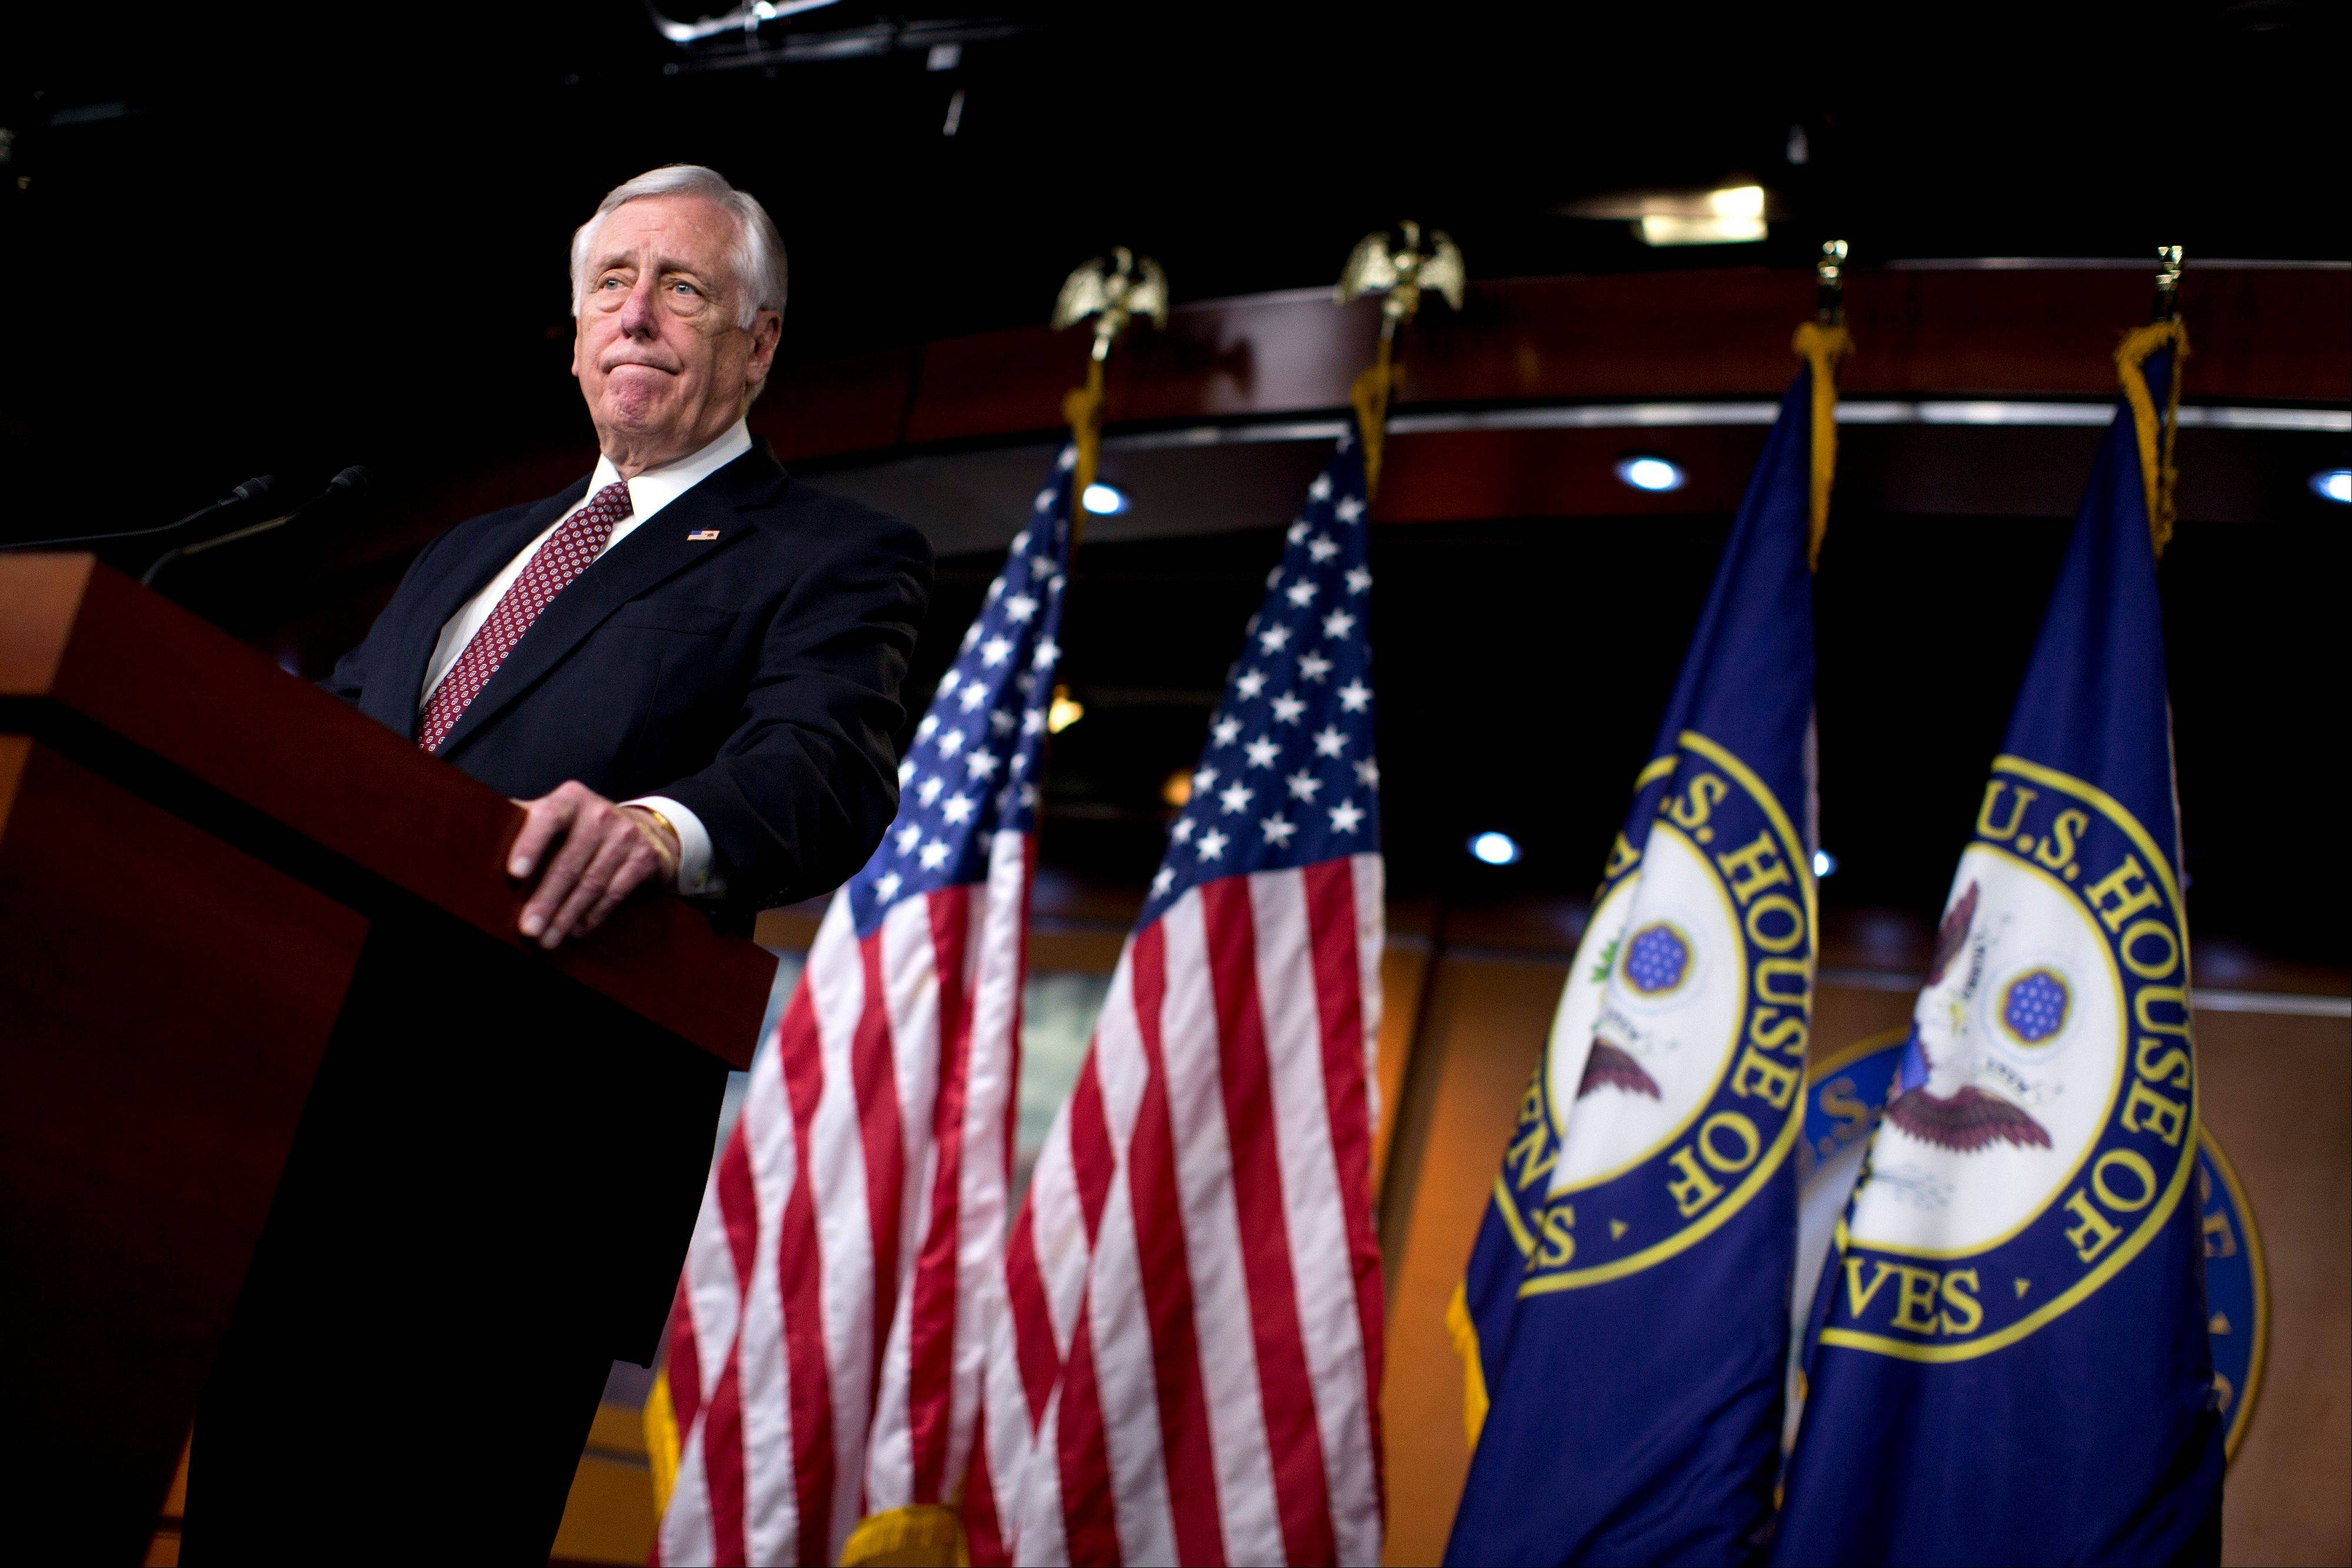 House Minority Whip Rep. Steny Hoyer of Md., pauses during a news conference on Capitol Hill in Washington, Thursday, Dec. 27, 2012, where he urged House Republicans to end the pro forma session and call the House back into legislative session to negotiate a solution to the fiscal cliff.